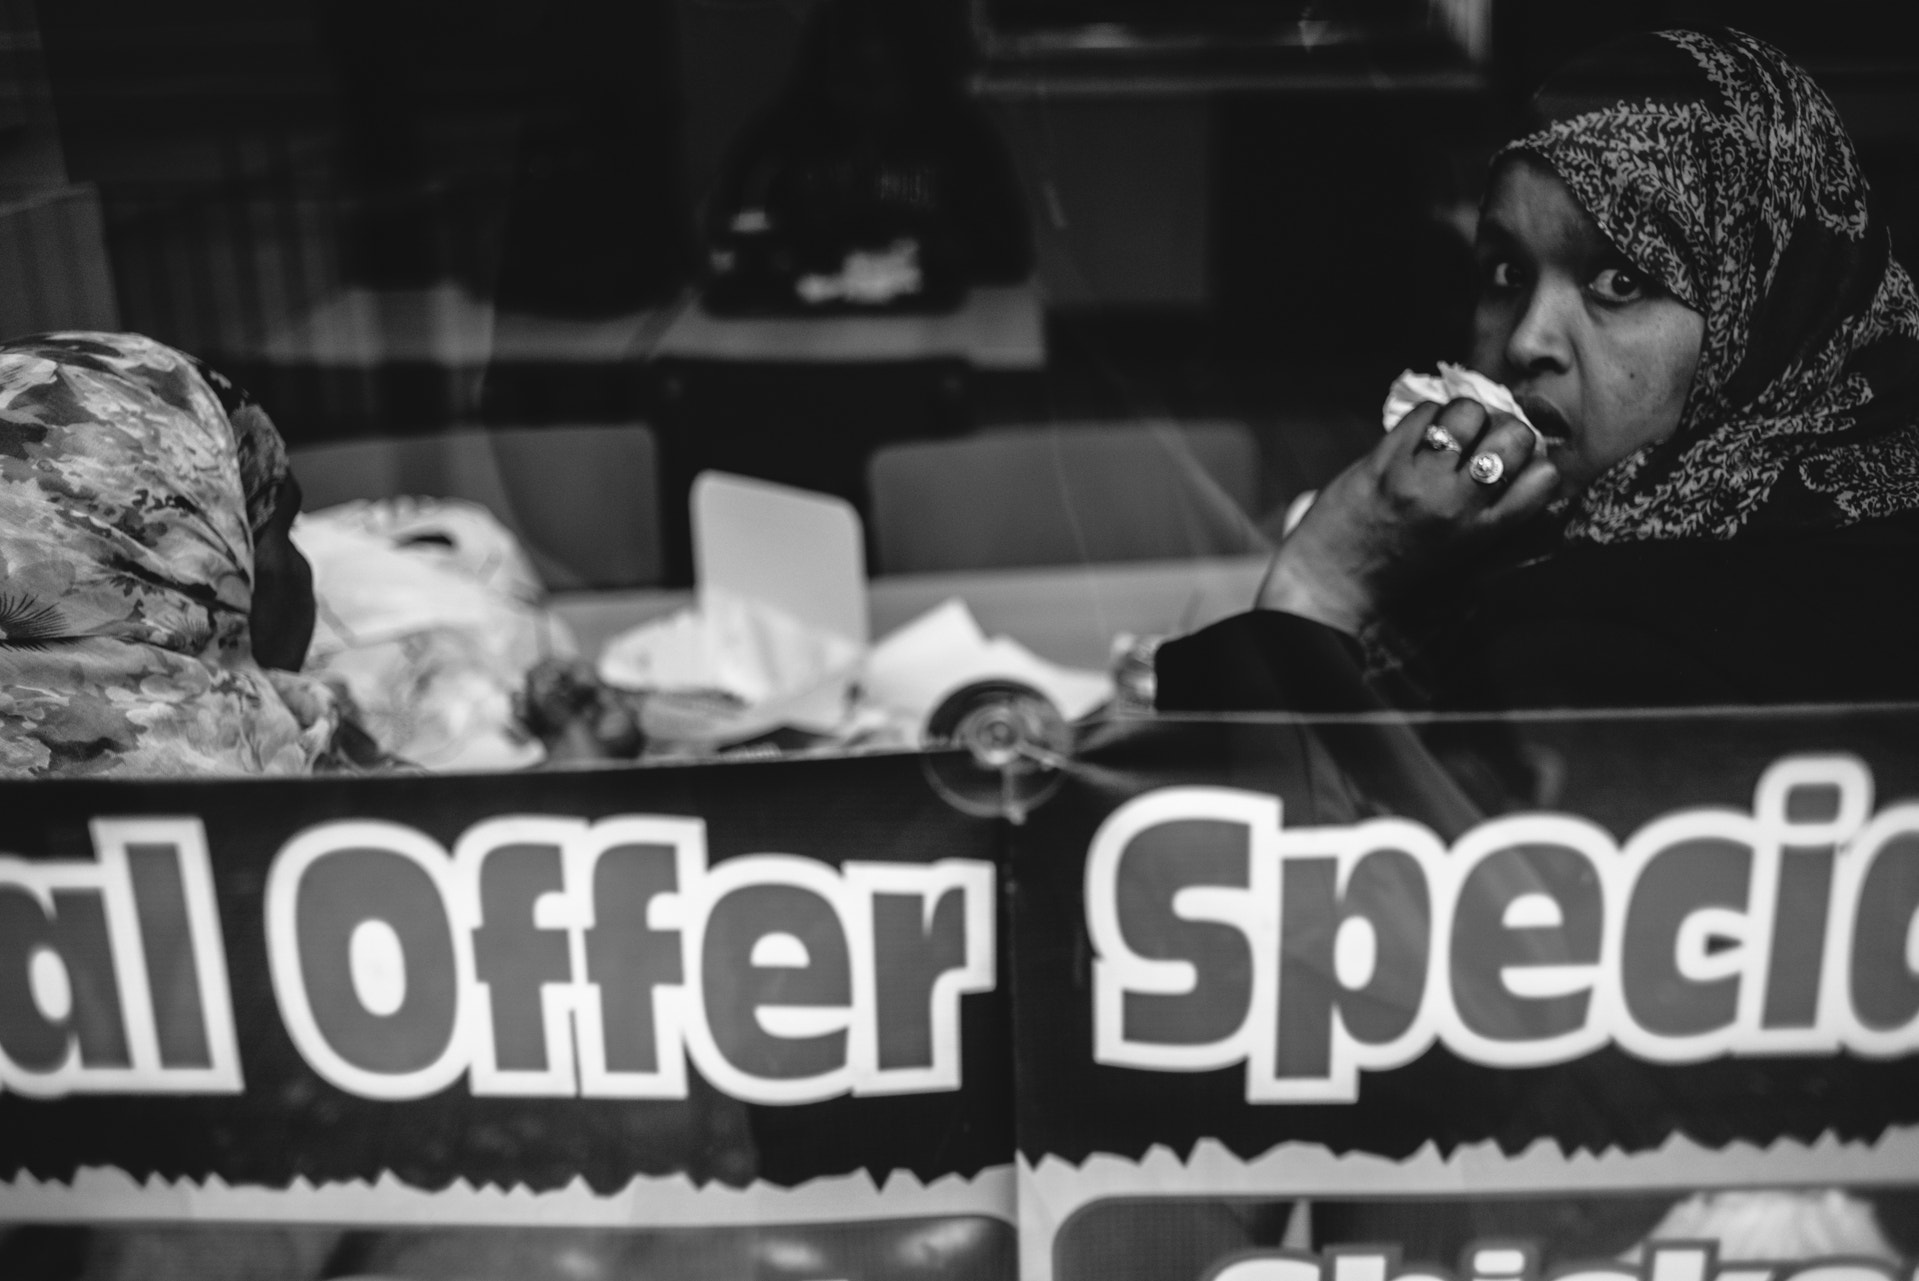 Photograph Fastfood by Paul Bence on 500px